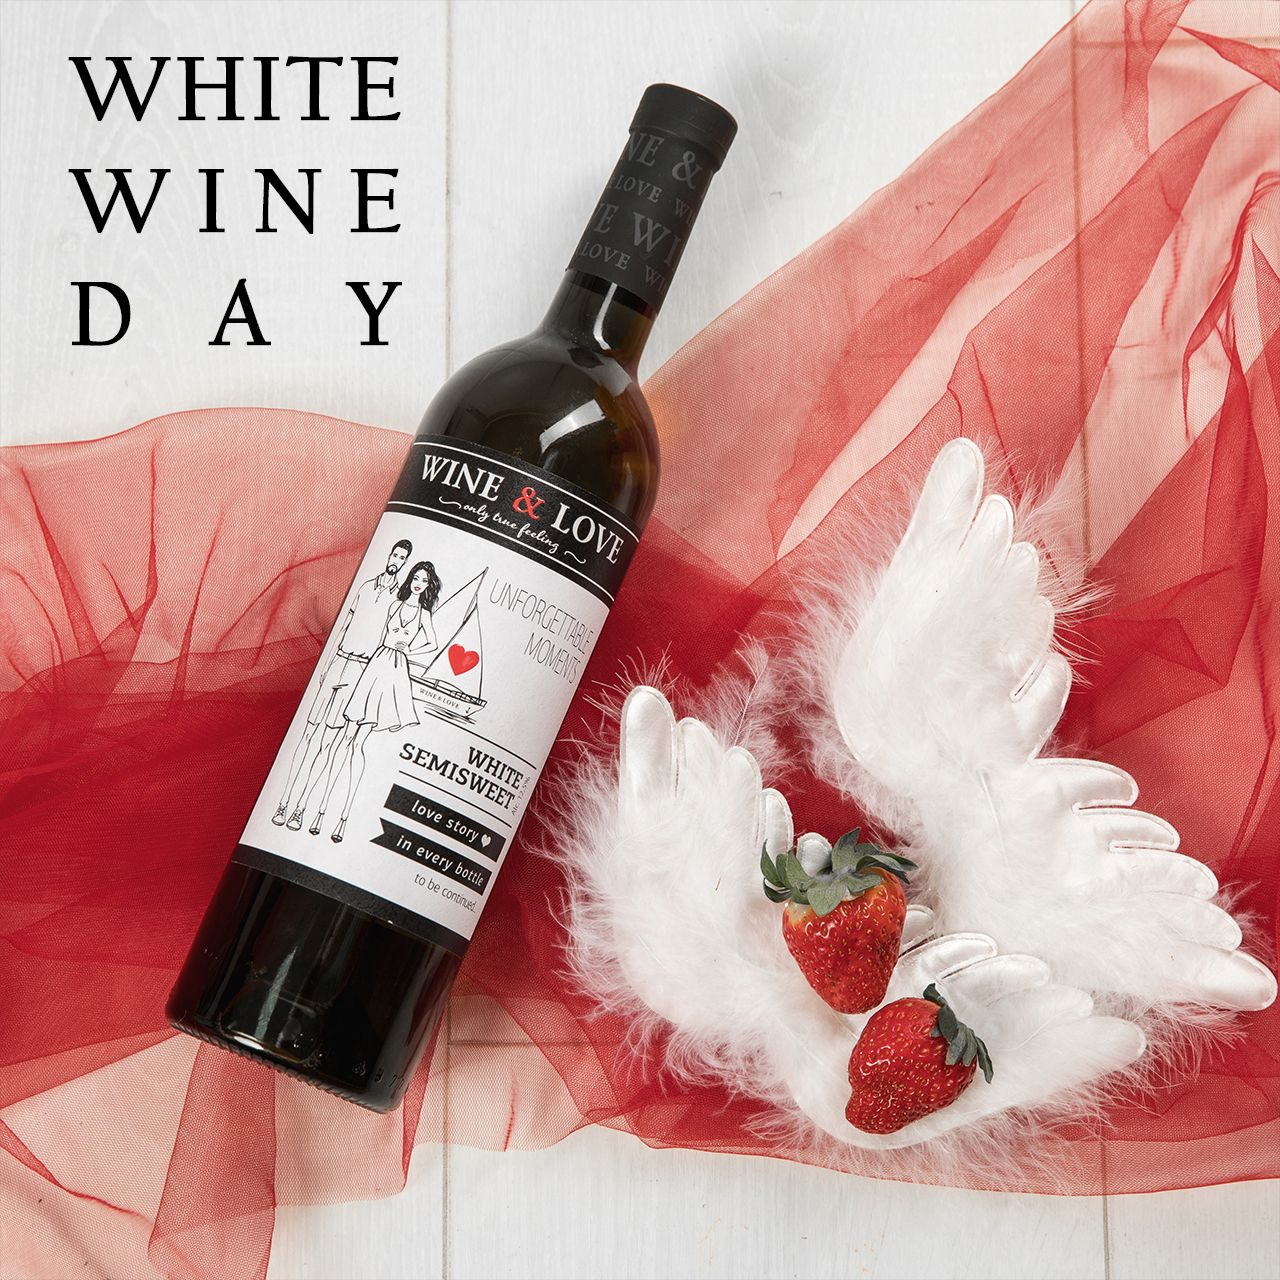 Let S Face It White Wine Is Beautiful Light Crisp And Refreshing But Actually Never Truly White Instead White Wines Are Generally A Wine Wine Bottle Wines